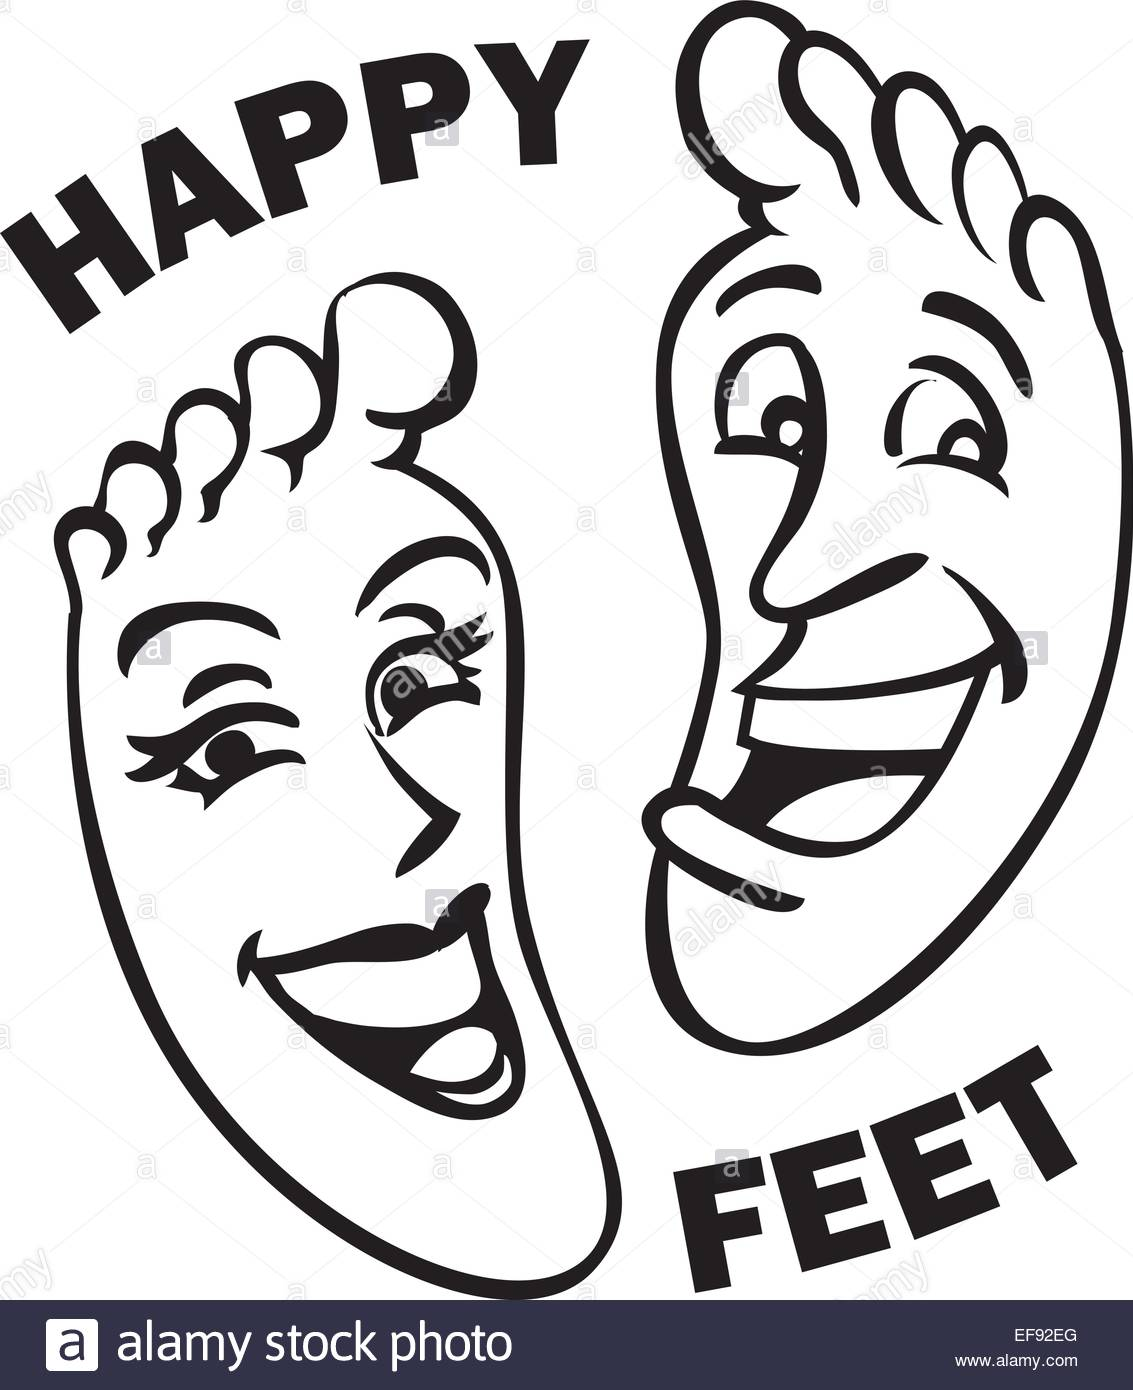 1133x1390 A Pair Of Feet With Smiley Faces And The Words Happy Feet Written